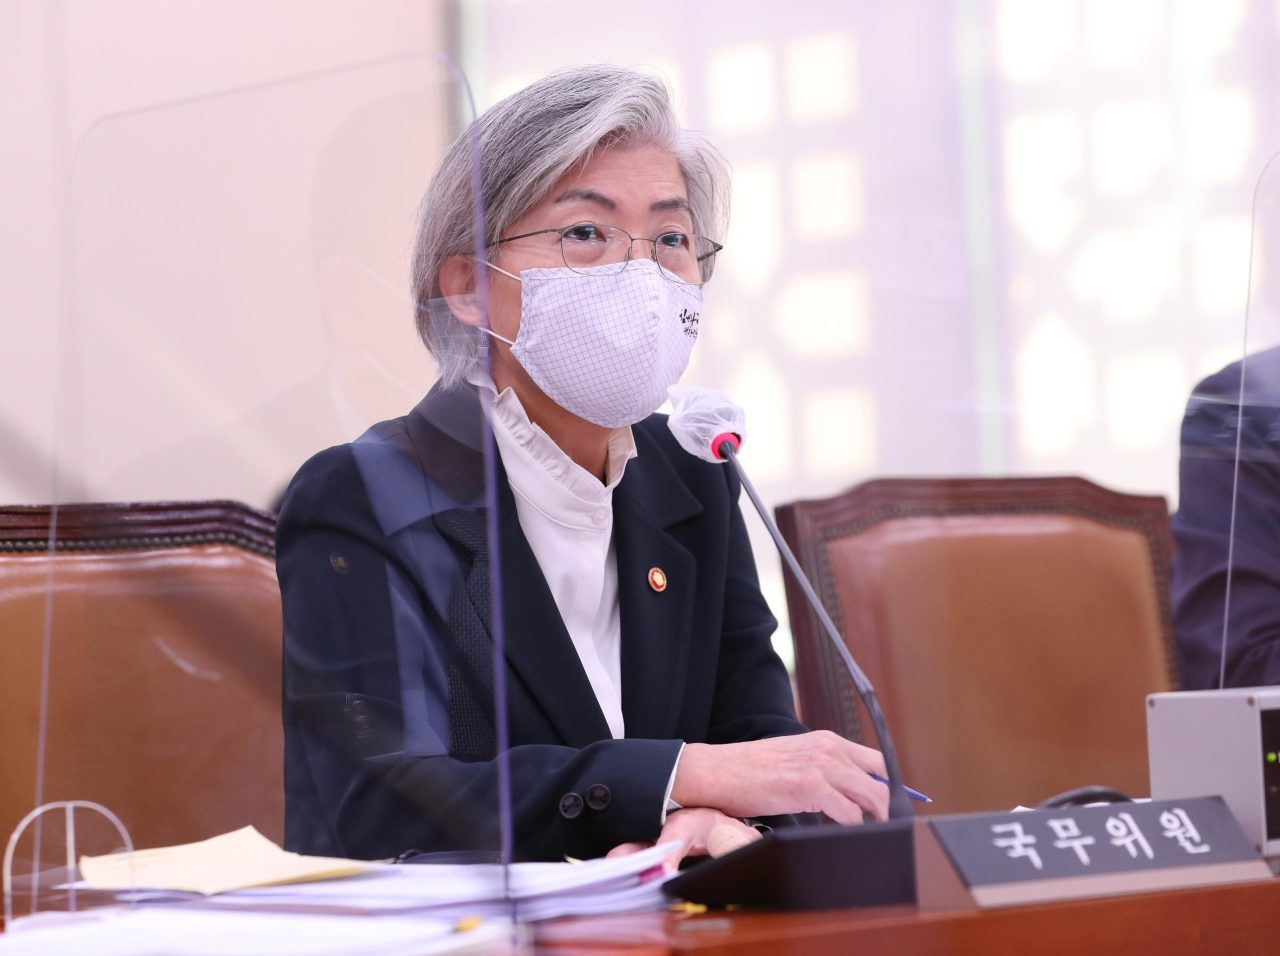 Foreign Minister Kang Kyung-wha speaks during a parliamentary audit at the National Assembly in Seoul on Oct. 26, 2020. (Yonhap)